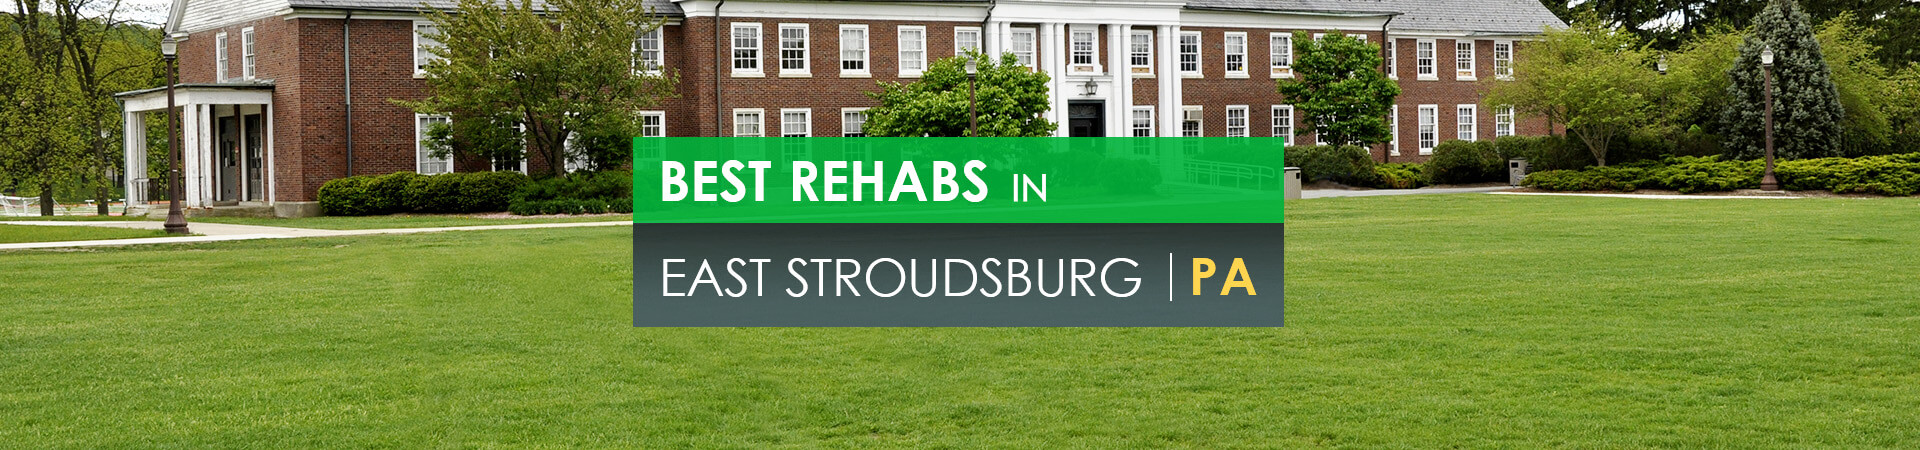 Best rehabs in East Stroudsburg, PA